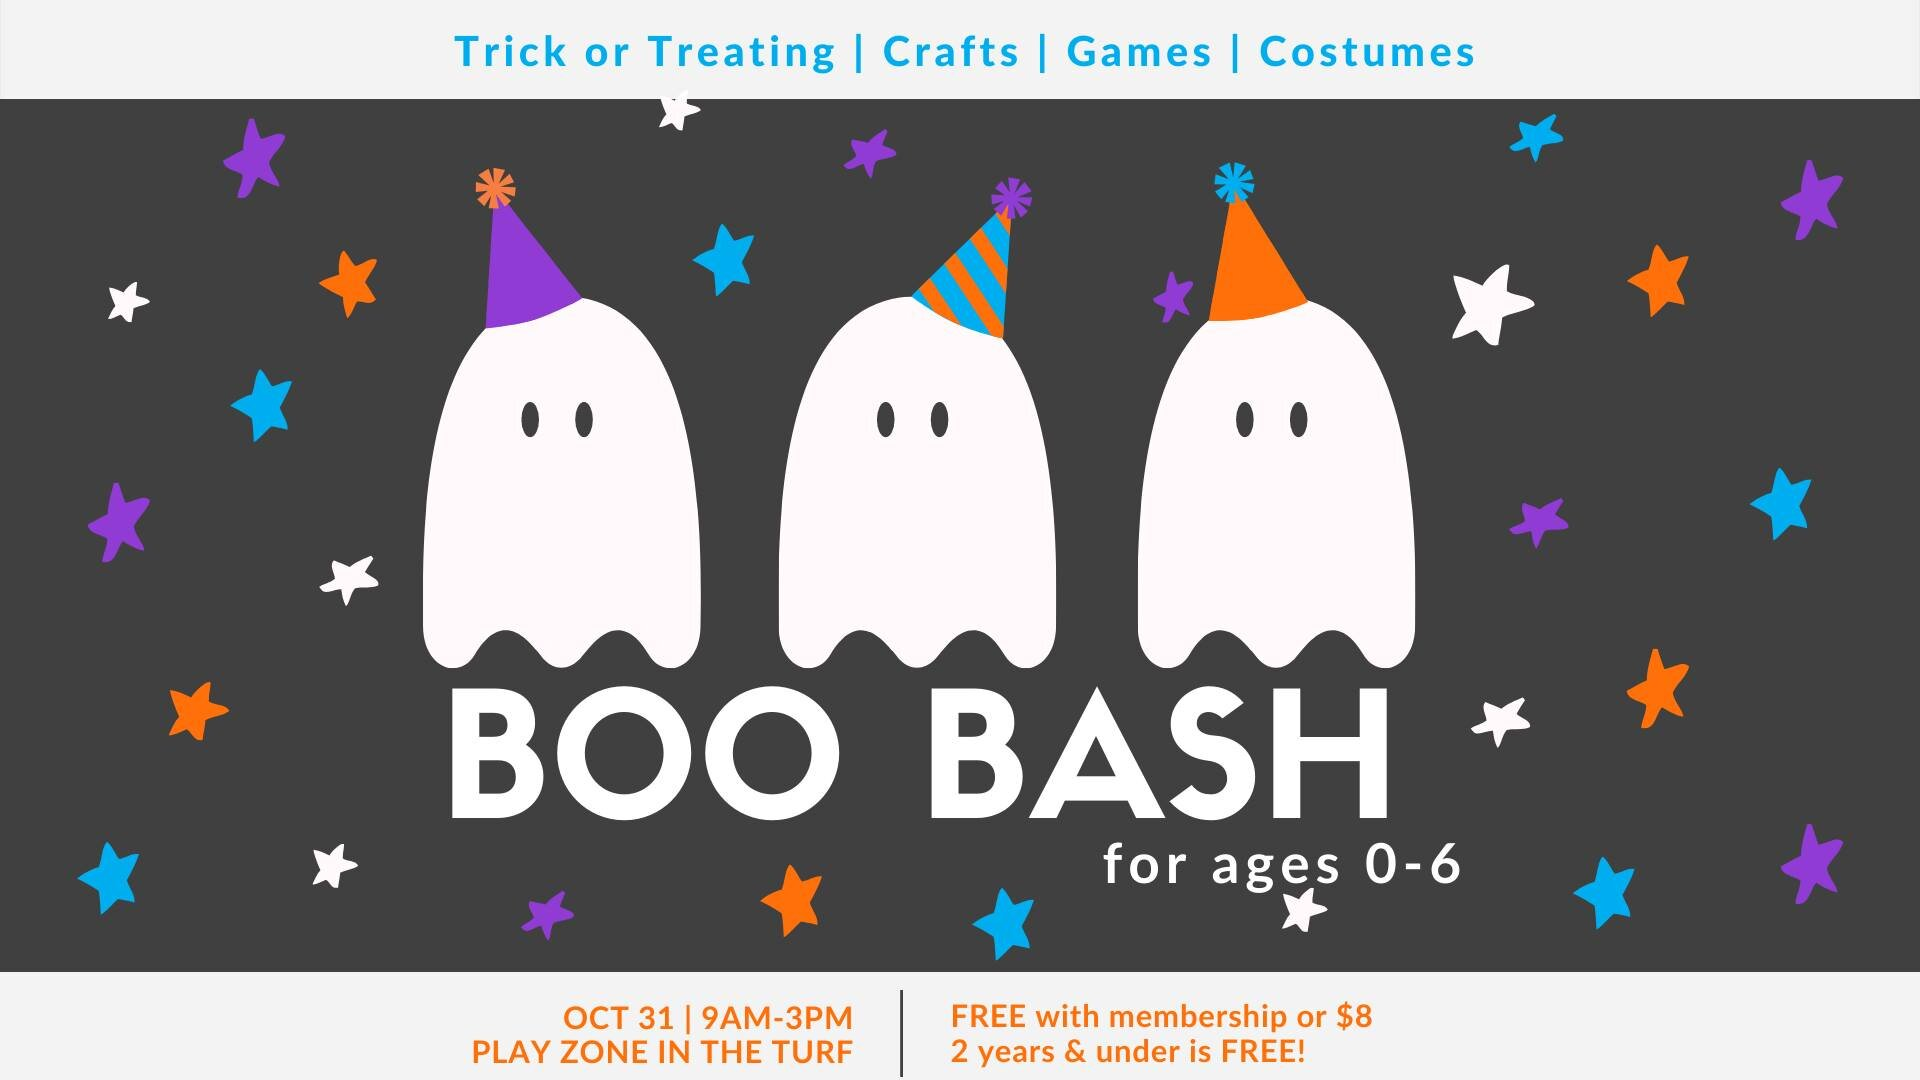 Boo Bash for ages 0 - 6 years - Spray Lakes Sawmill Family Recreation CentreThursday, October 31 from 9am to 3pmFree with membership or $82 years and under is Free!